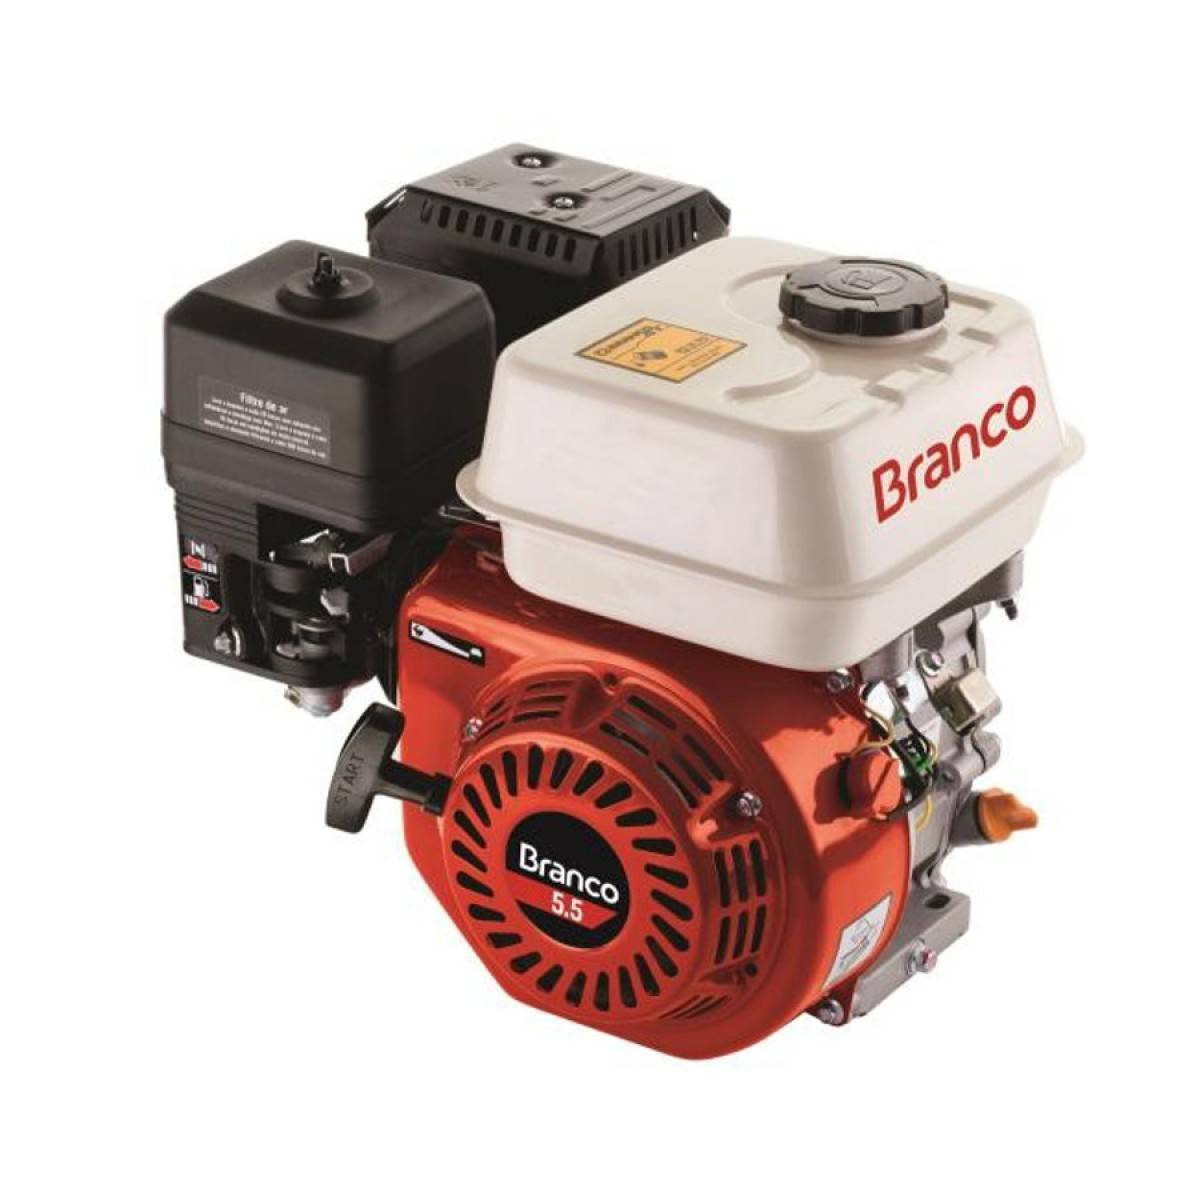 Motor Branco Gasolina B4T 5,5CV Eixo Horizontal P. Manual